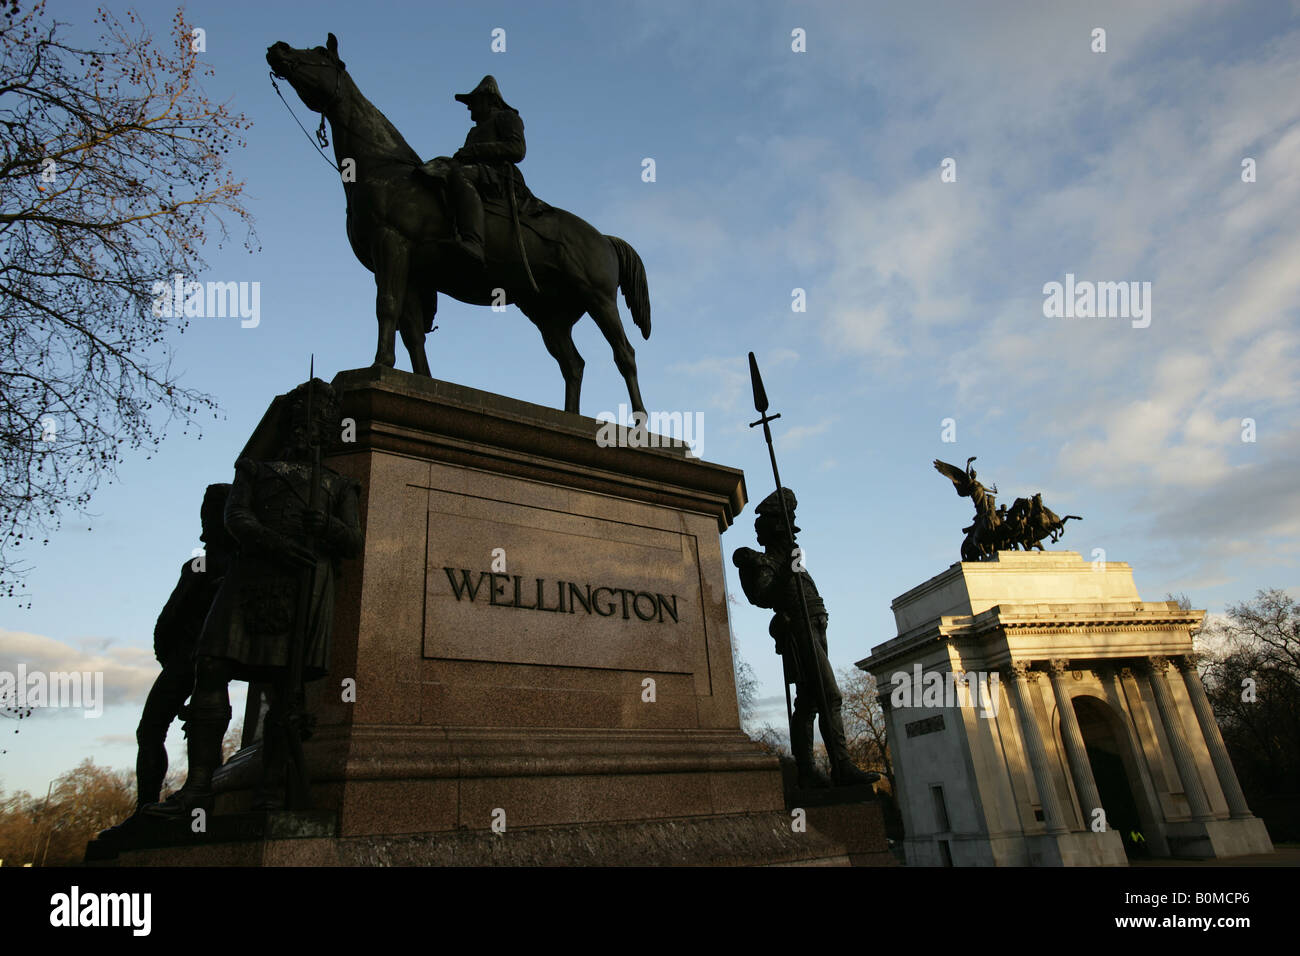 City of London, England. Duke of Wellington statue with the Wellington Arch and Quadriga sculpture at Hyde Park - Stock Image